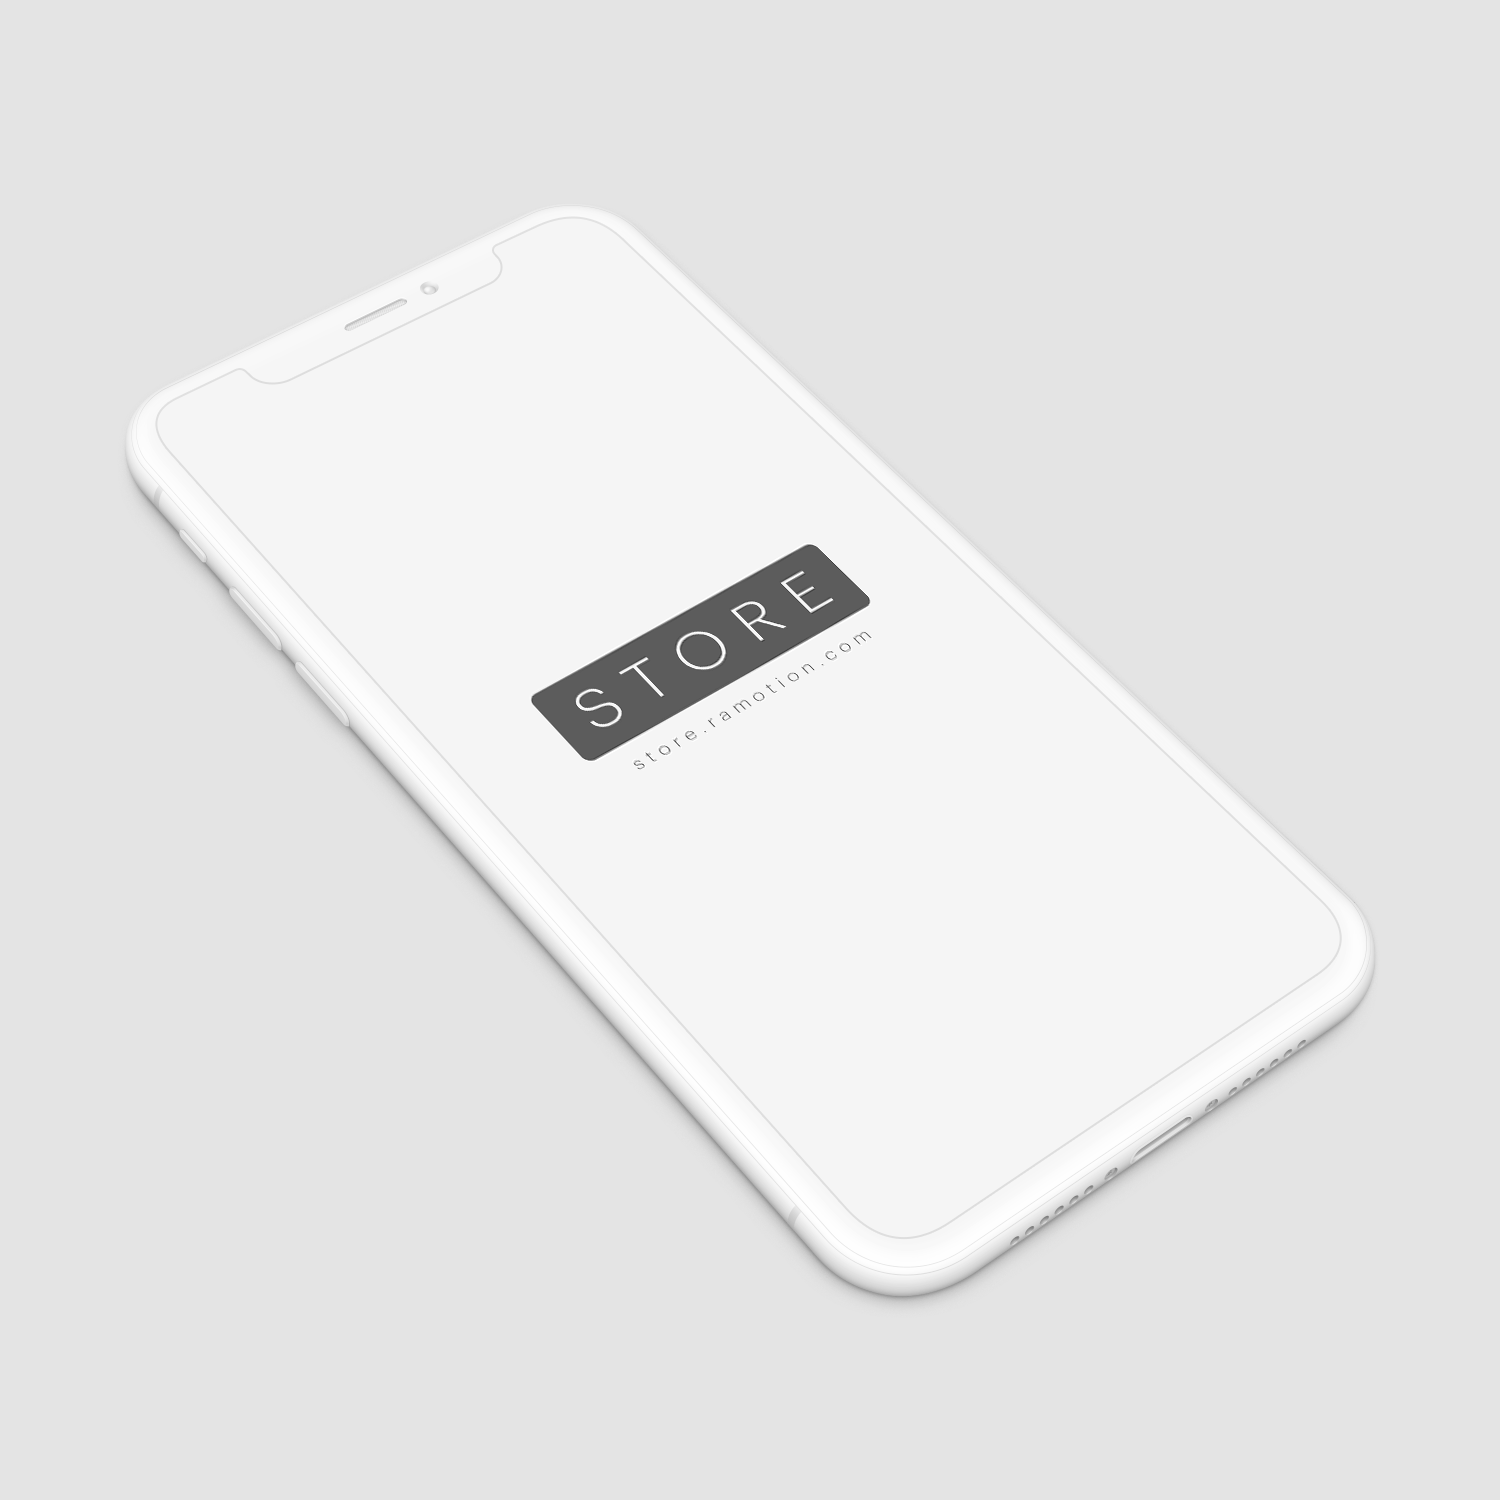 iPhone X Clay - White Perspective Mockup by Ramotion